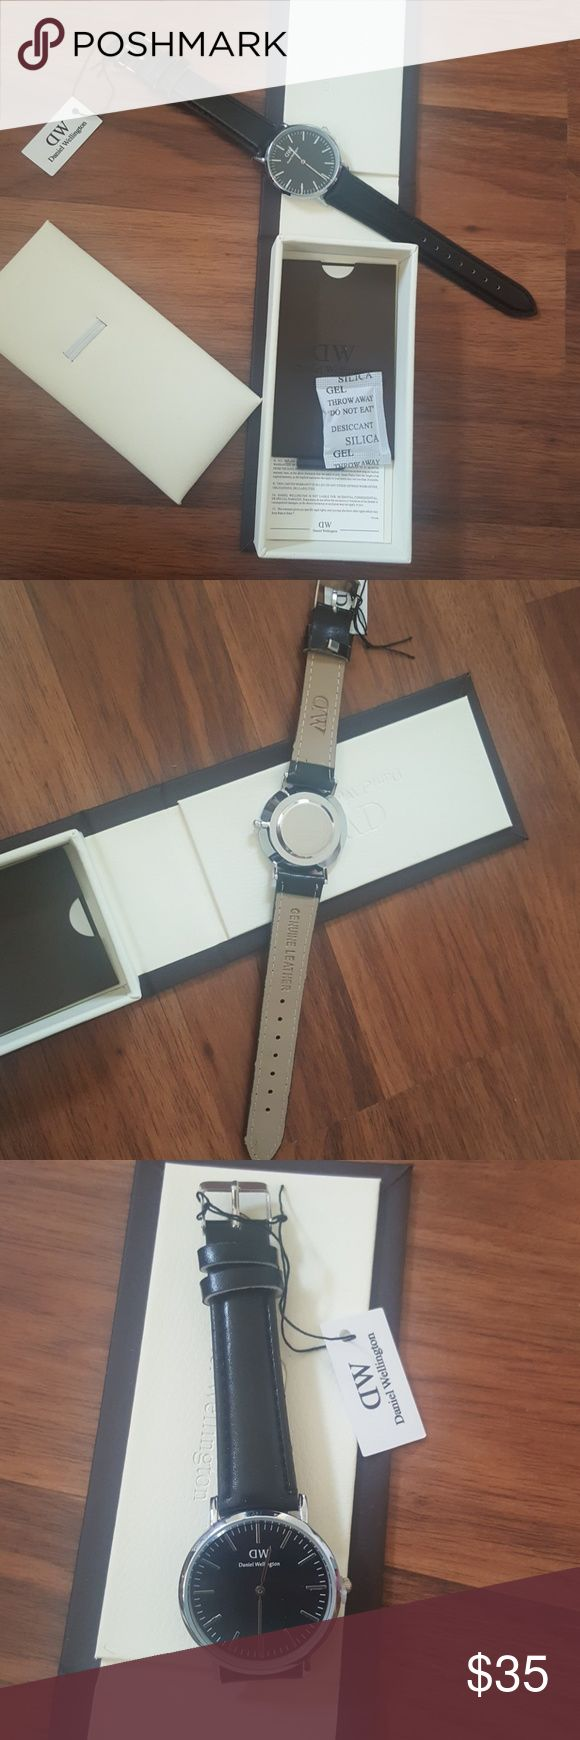 Daniel Wellington watch Daniel Wellington watch 36mm  Black leather new with box & Other Stories Accessories Watches